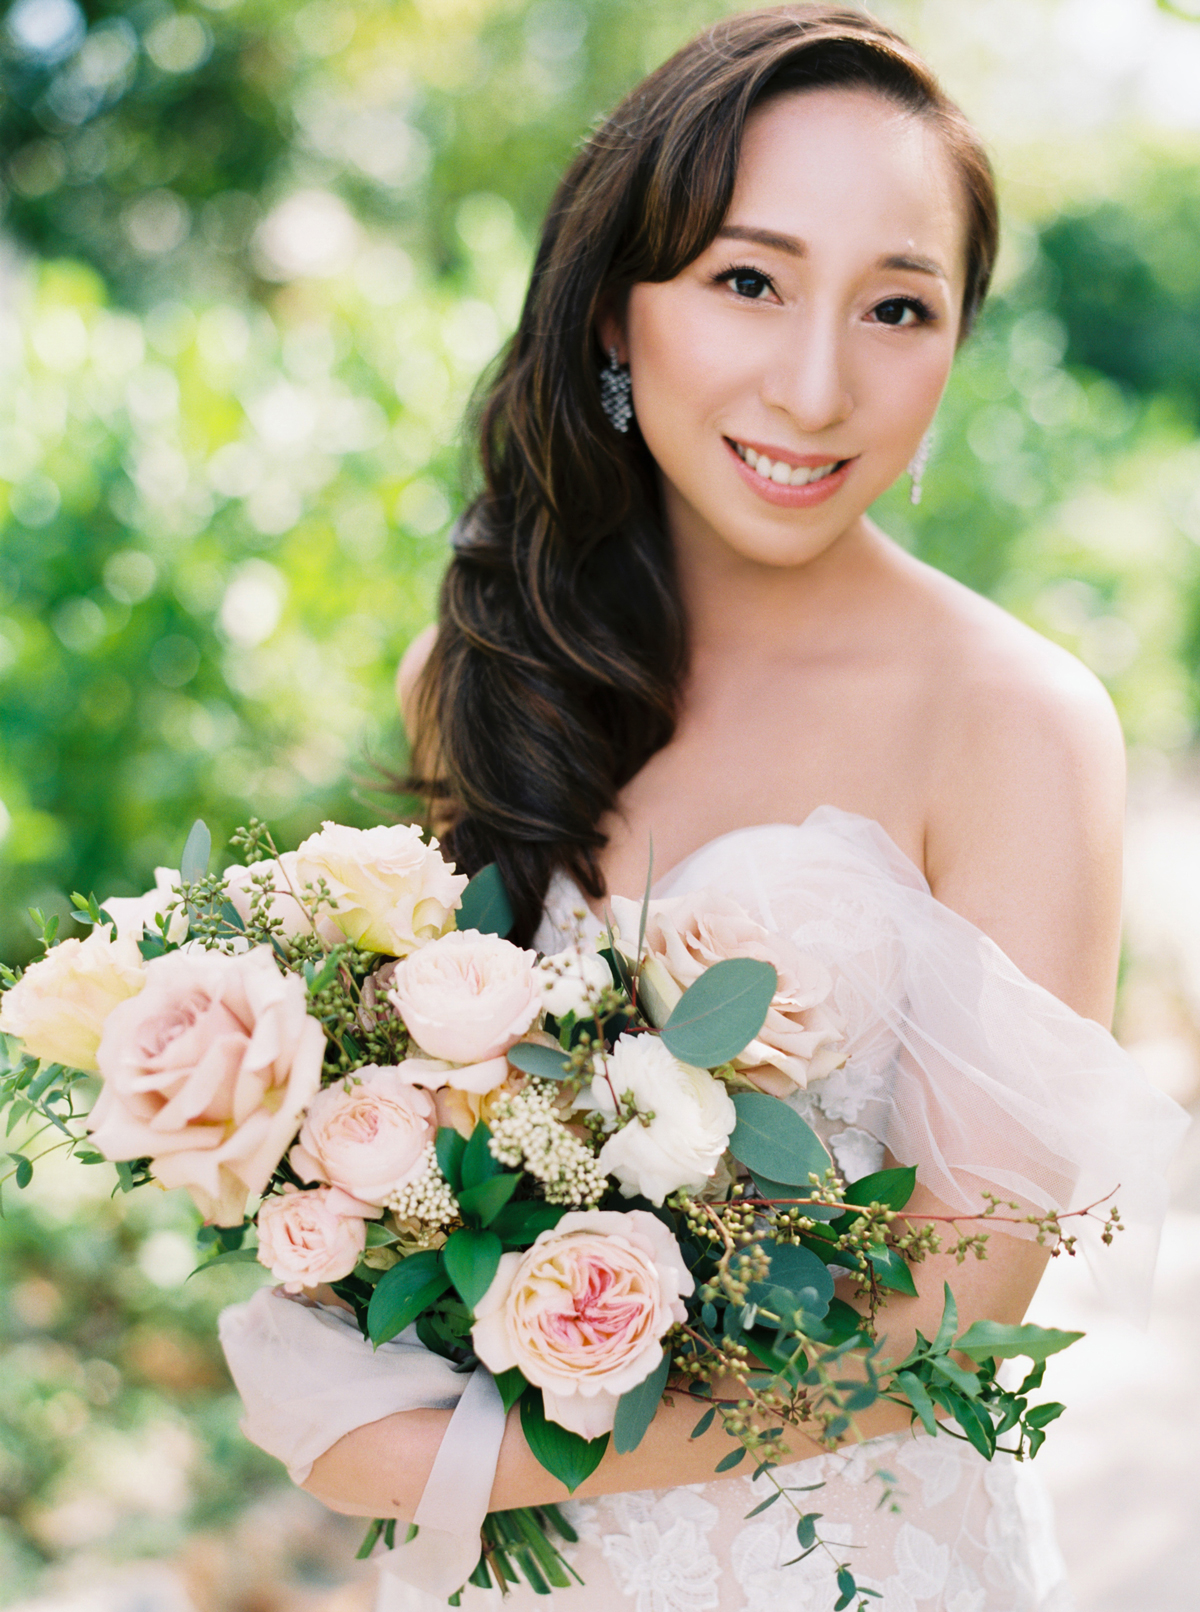 bride holding blush and peach-colored roses bouquet